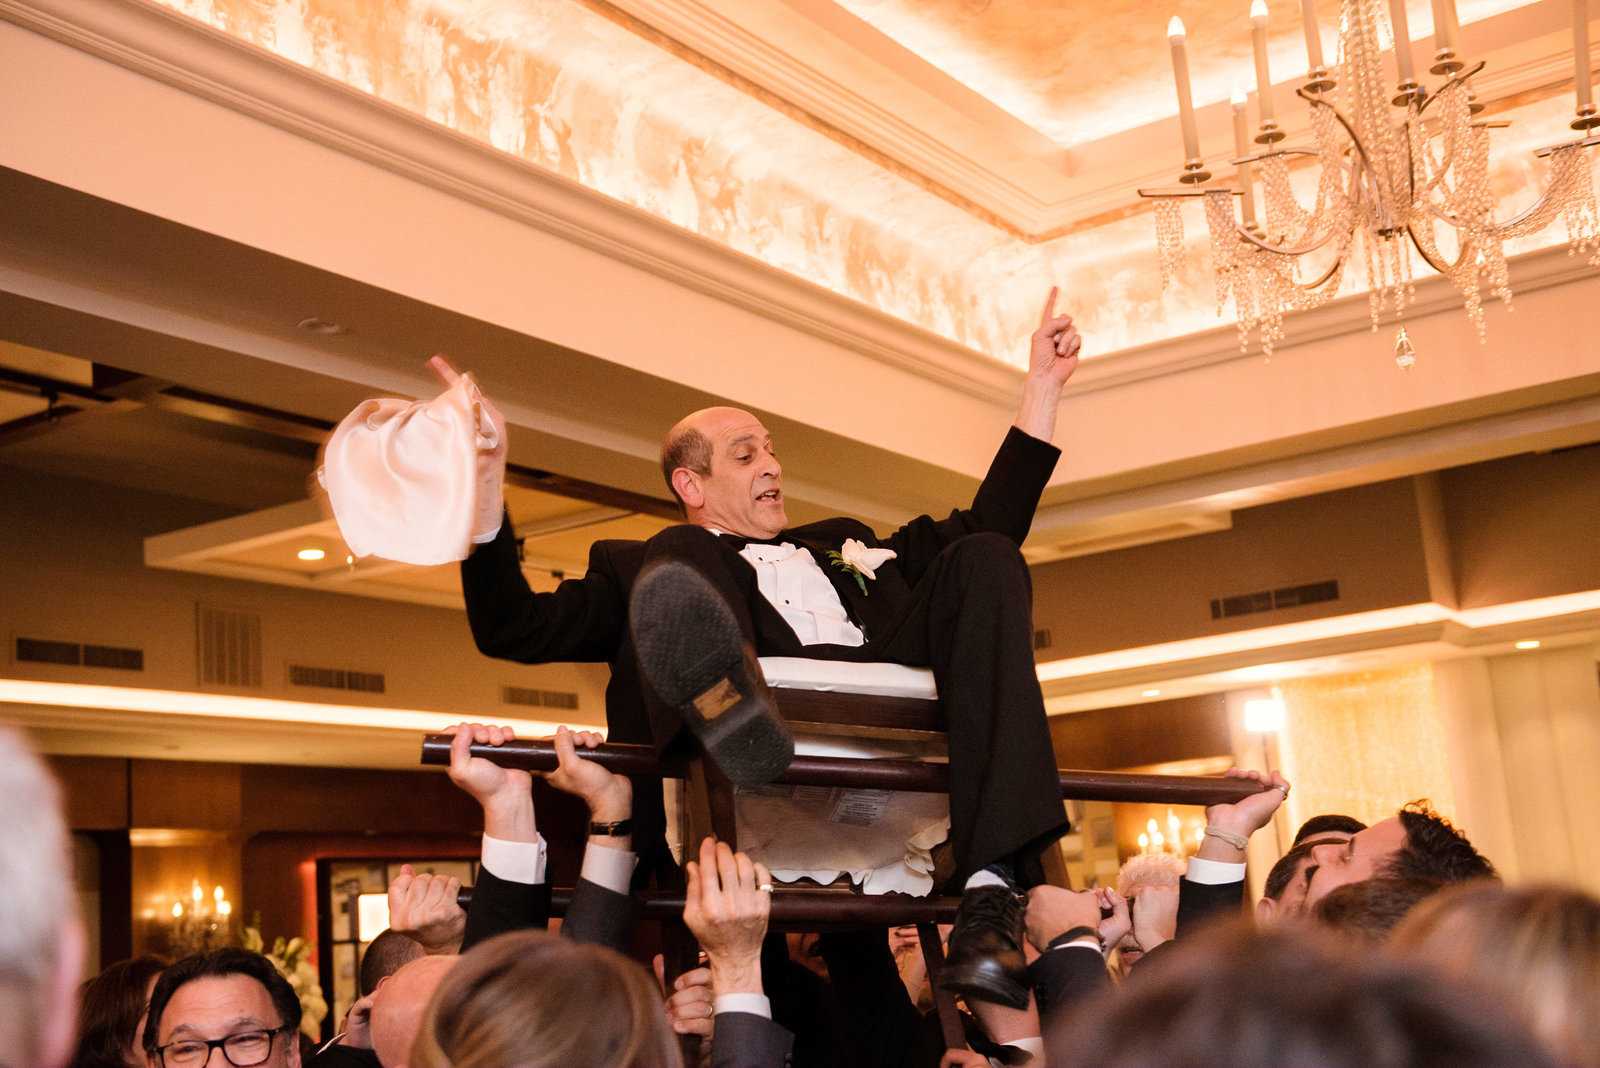 Father of the bride on the chair during the Hora